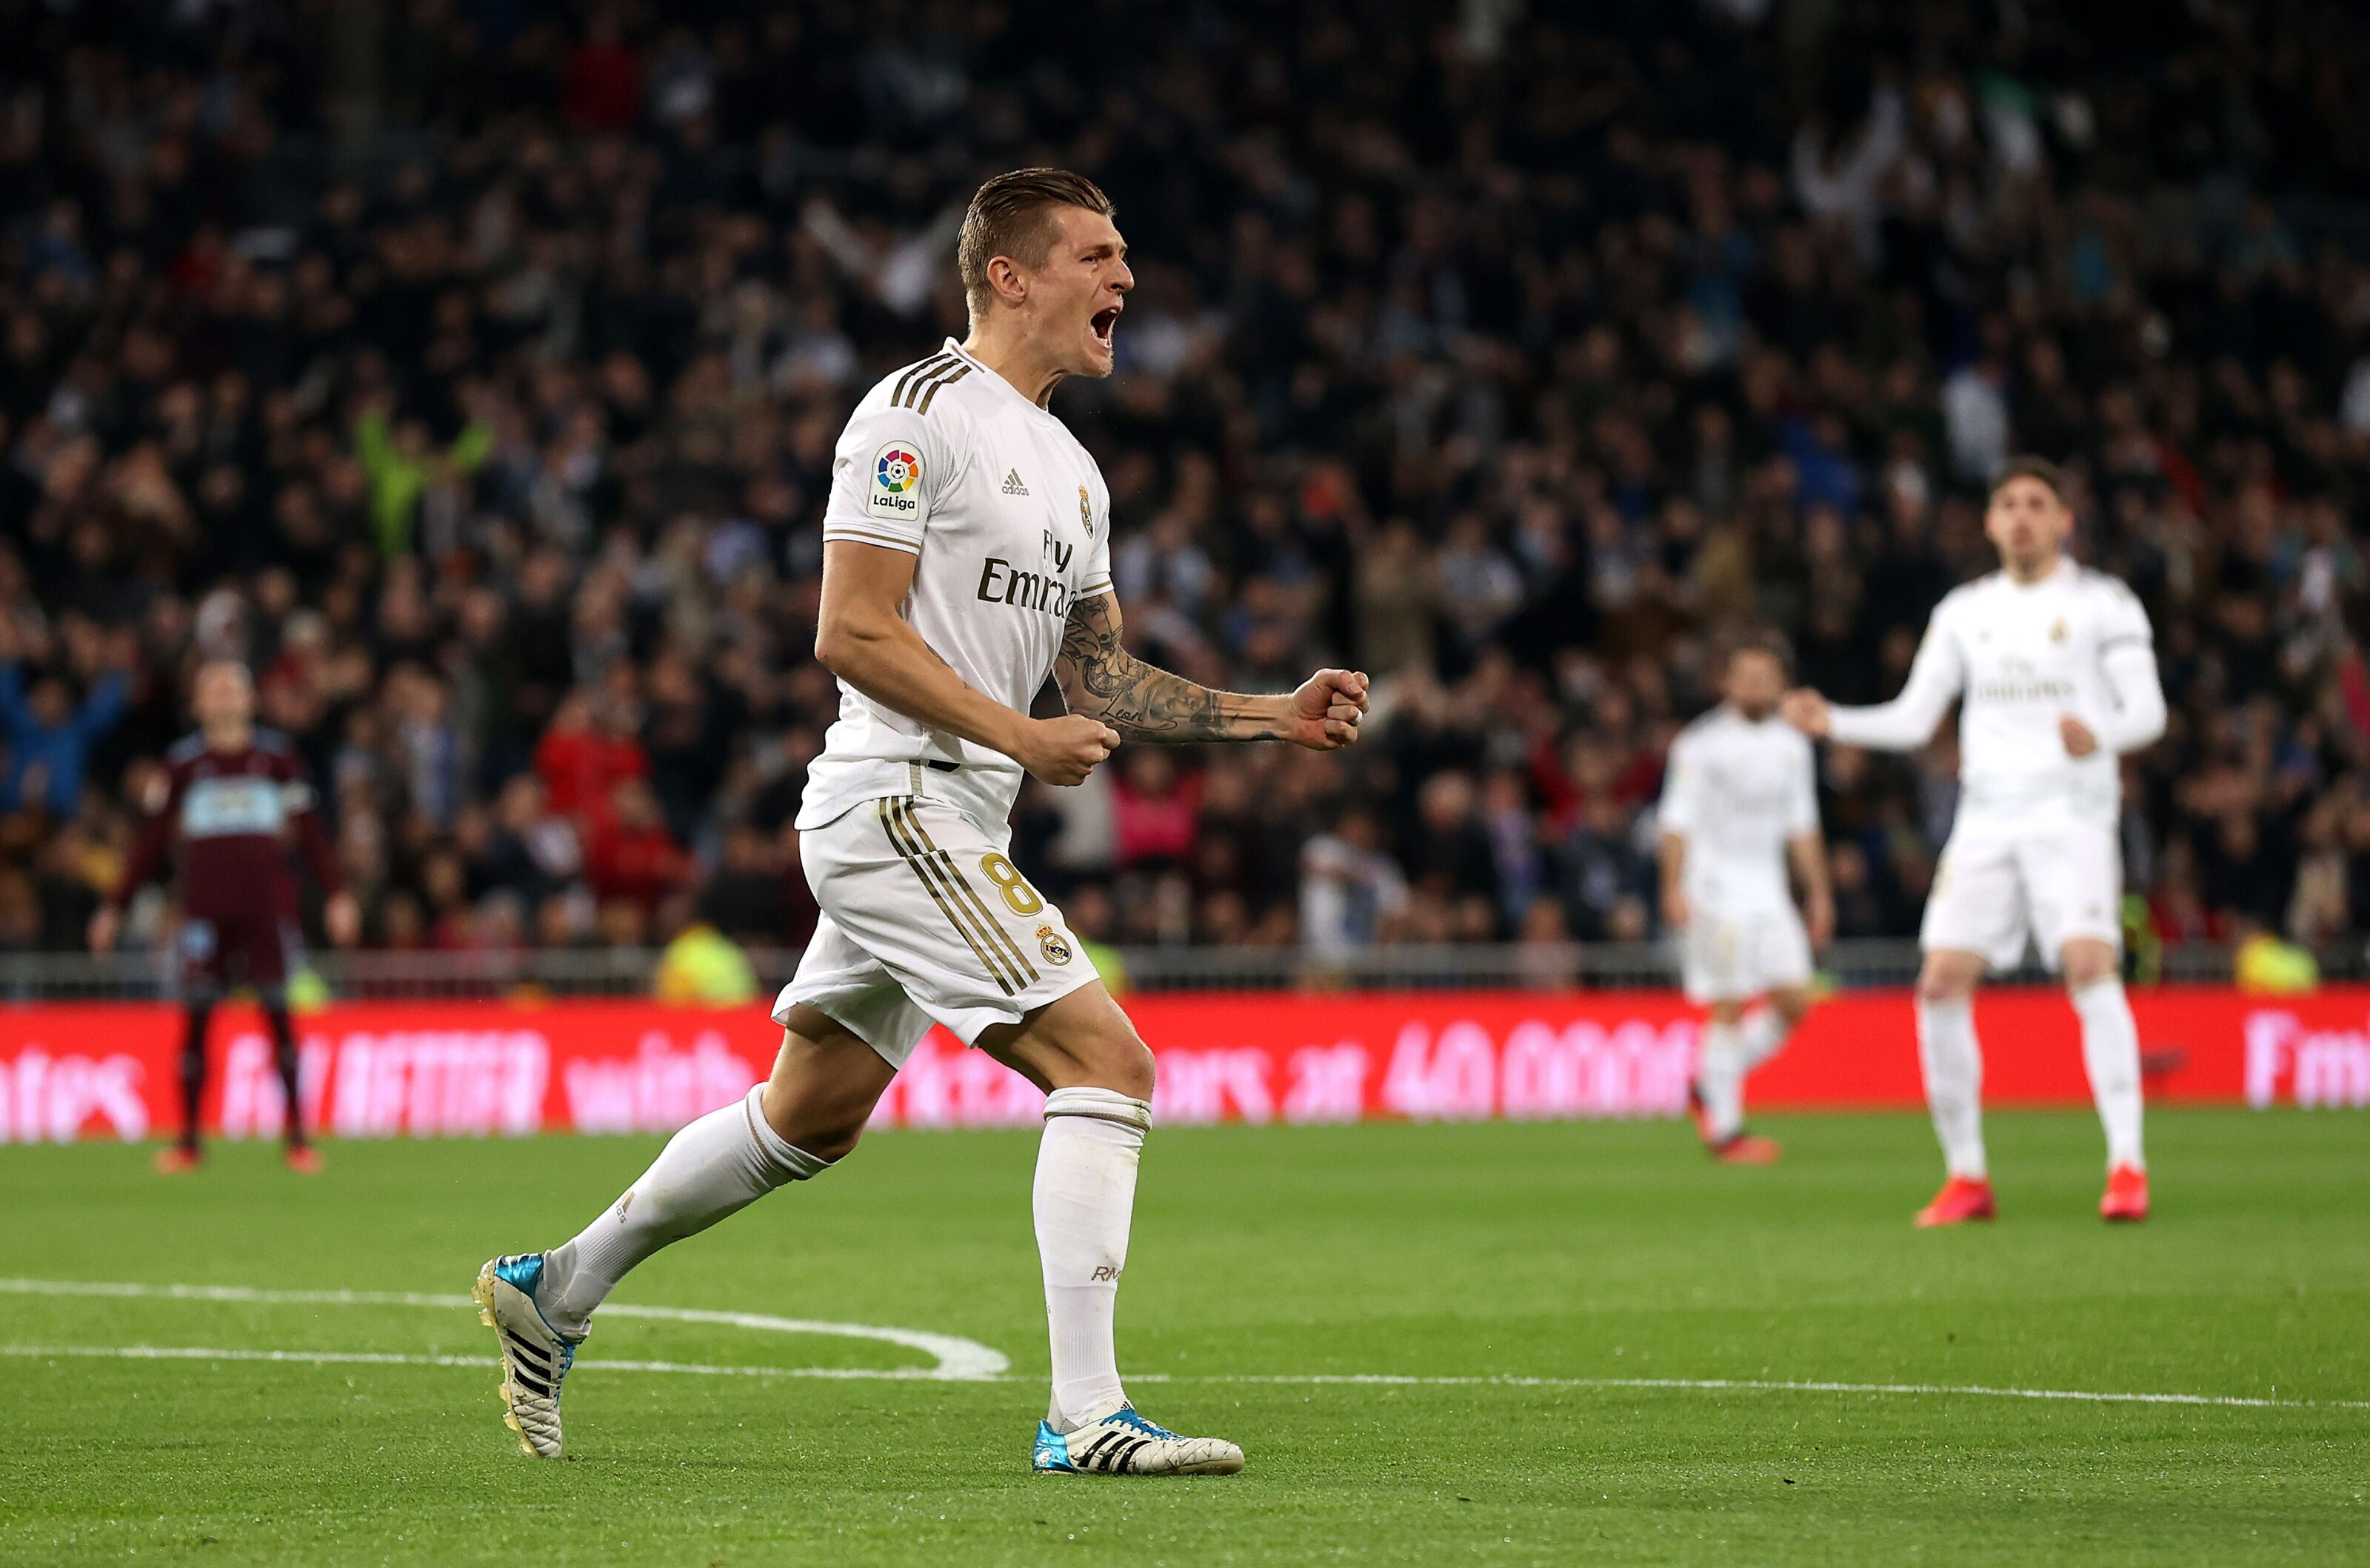 Real Madrid vs. Celta Vigo: Player Ratings from 2-2 draw